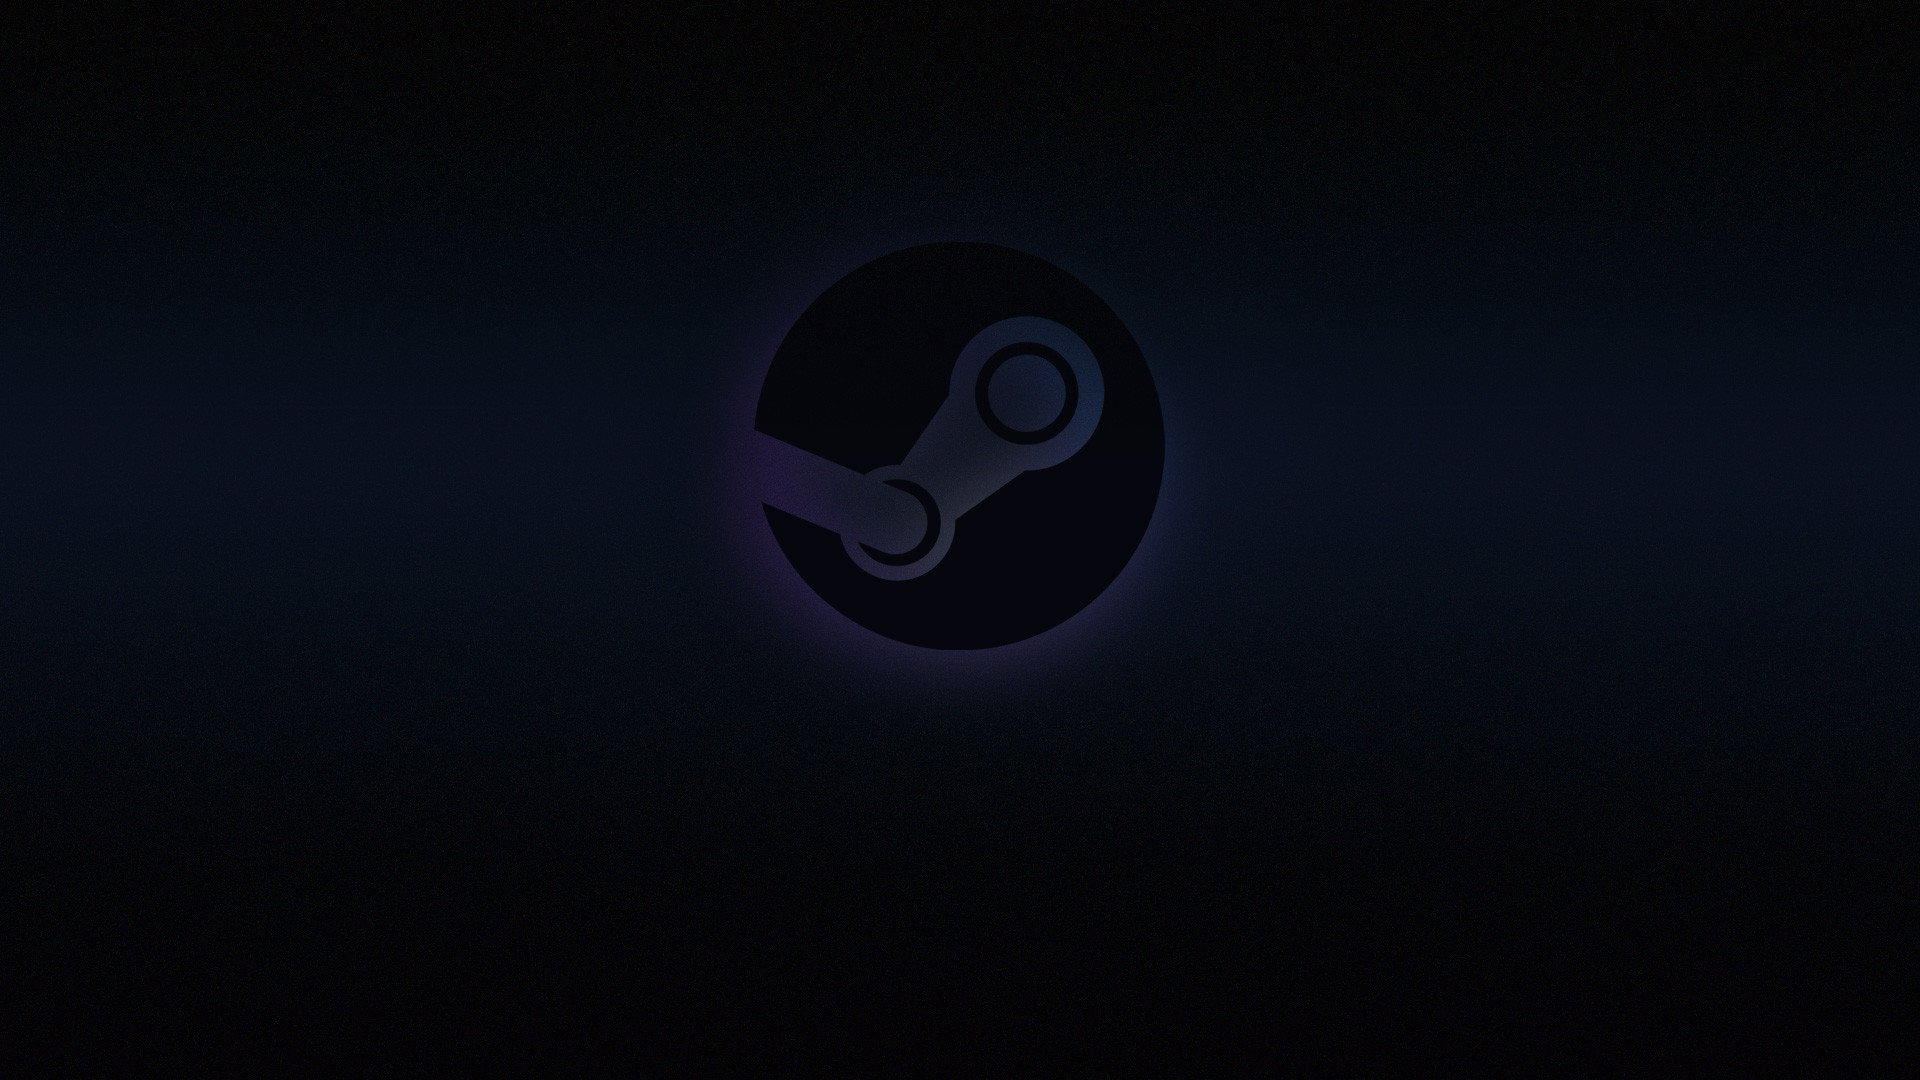 Latest Steam update allows for more games to be played on Linux screenshot